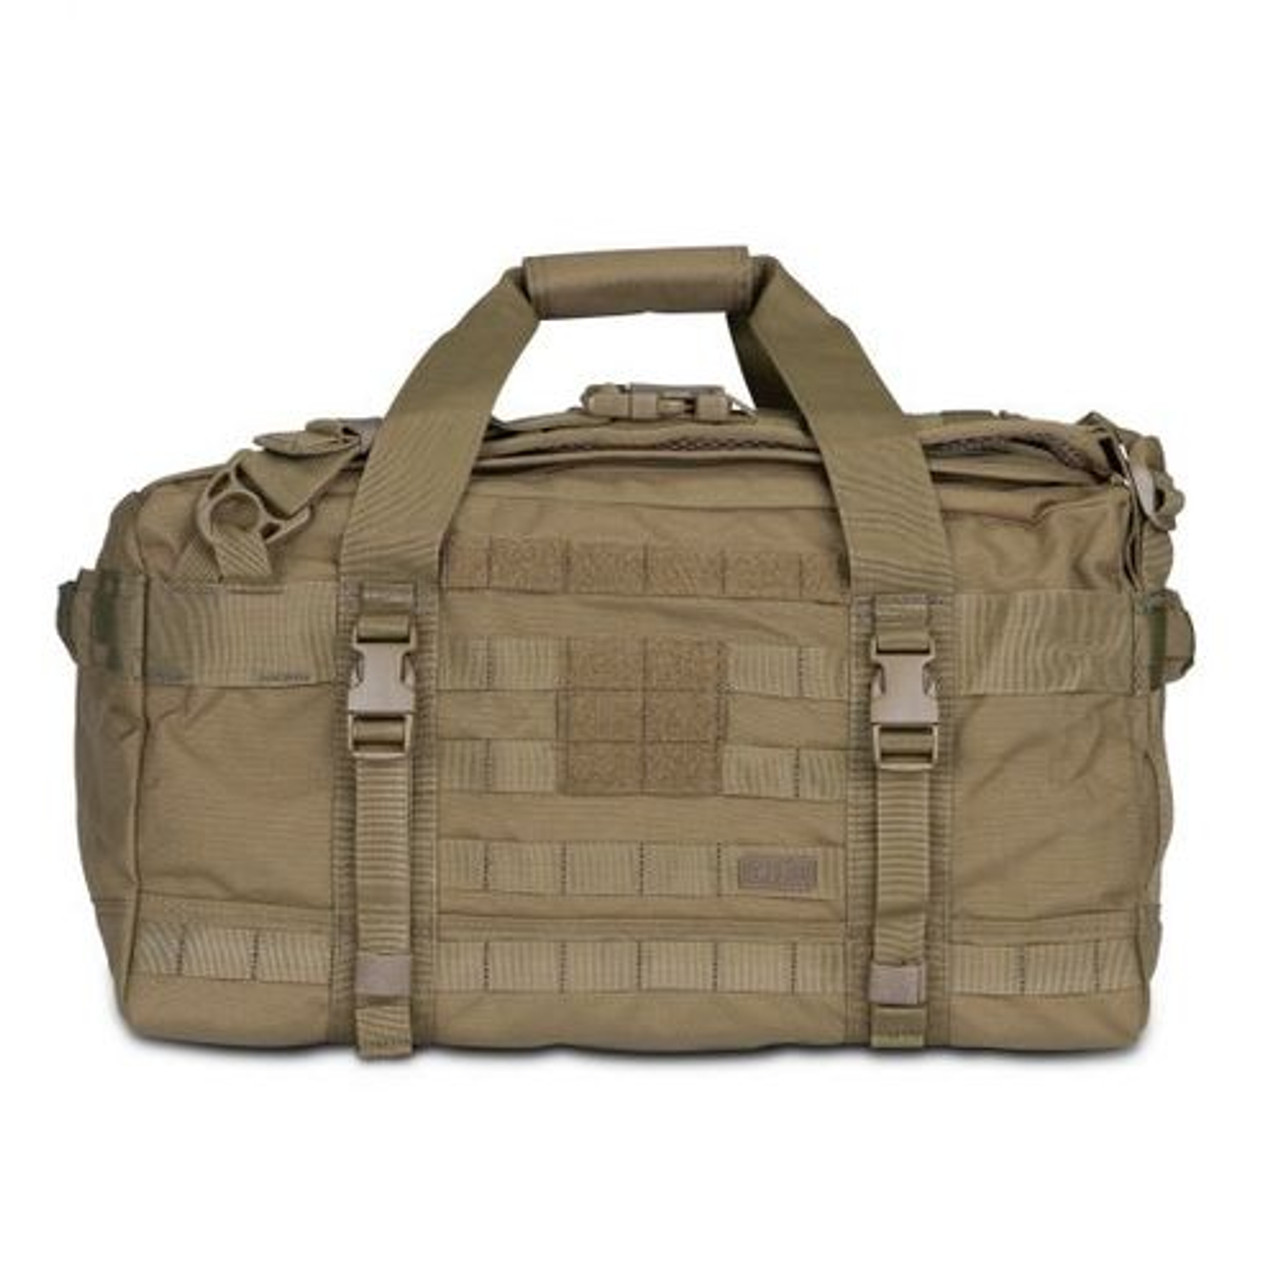 5.11 Tactical RUSH LBD MIKE, Water-resistant 1050D Nylon, Quick release adjustable backpack straps, Reinforced top carry and side grab handles, 56293